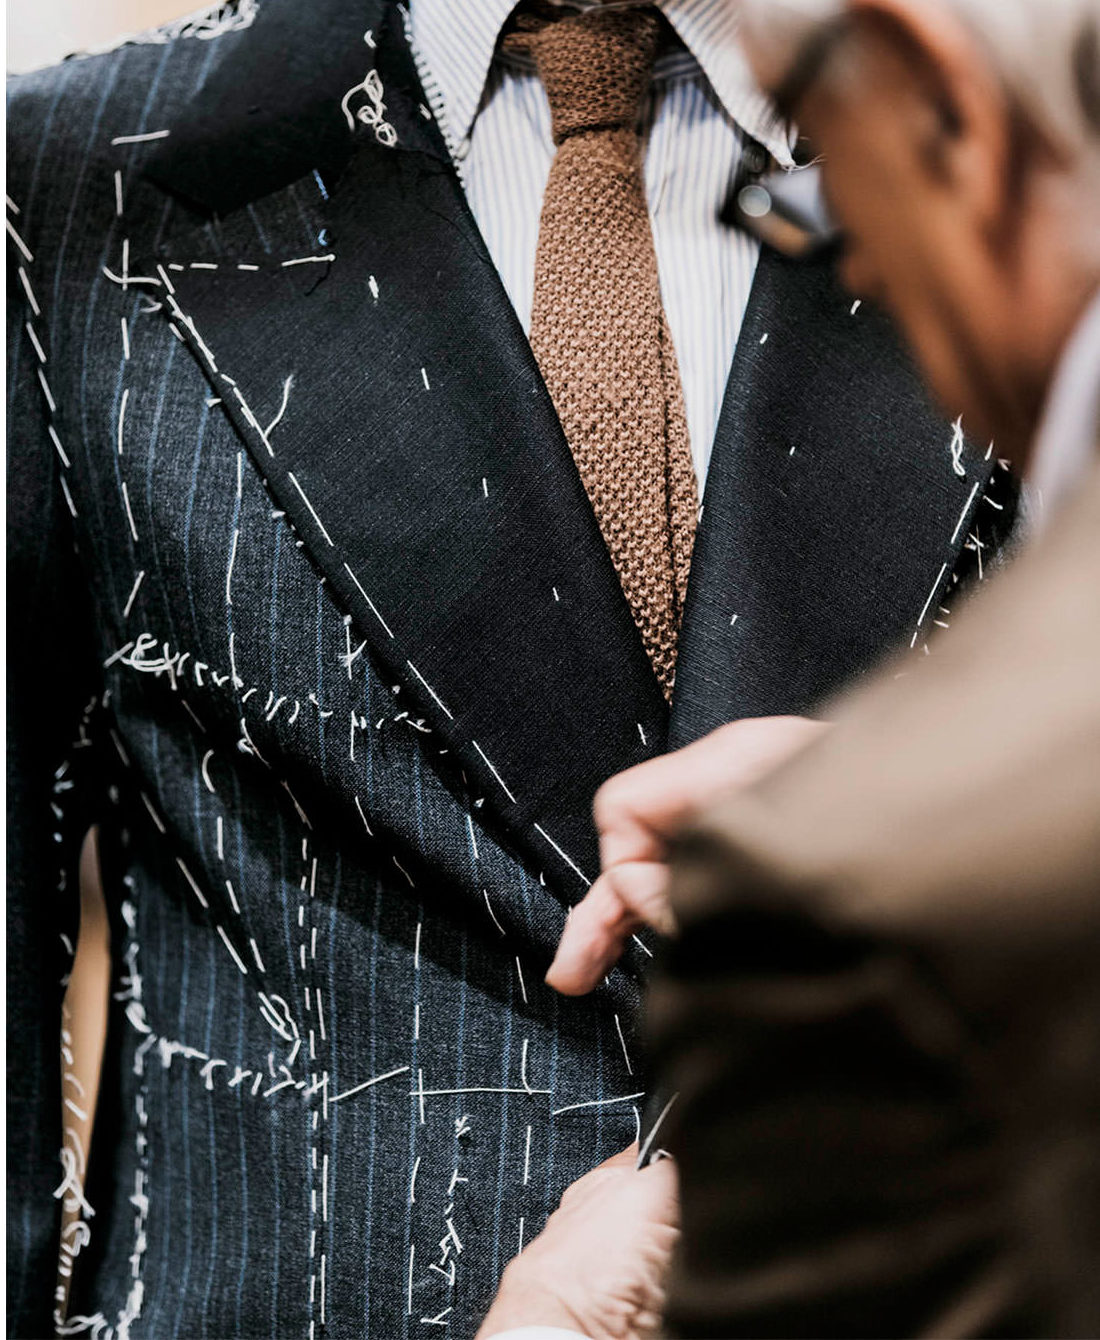 rubinacci-bespoke-suit-pursuits-bloomberg-15c